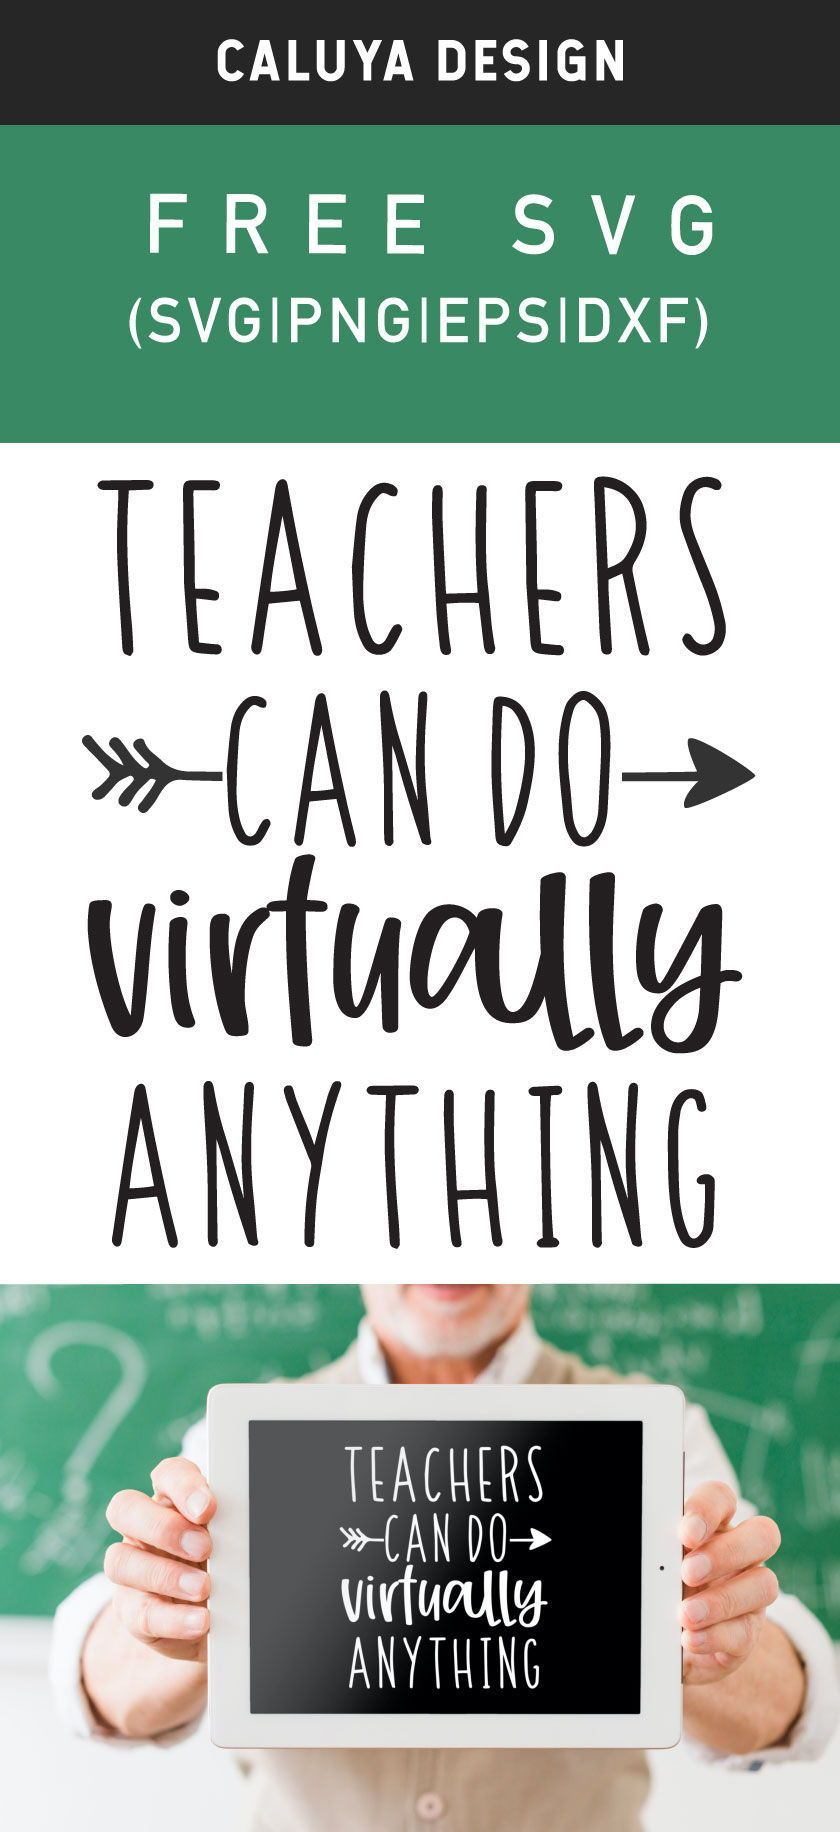 Free Teachers Can Do Virtually Anything Svg Png Eps Dxf In 2020 Free Teacher How To Make Planner Teacher